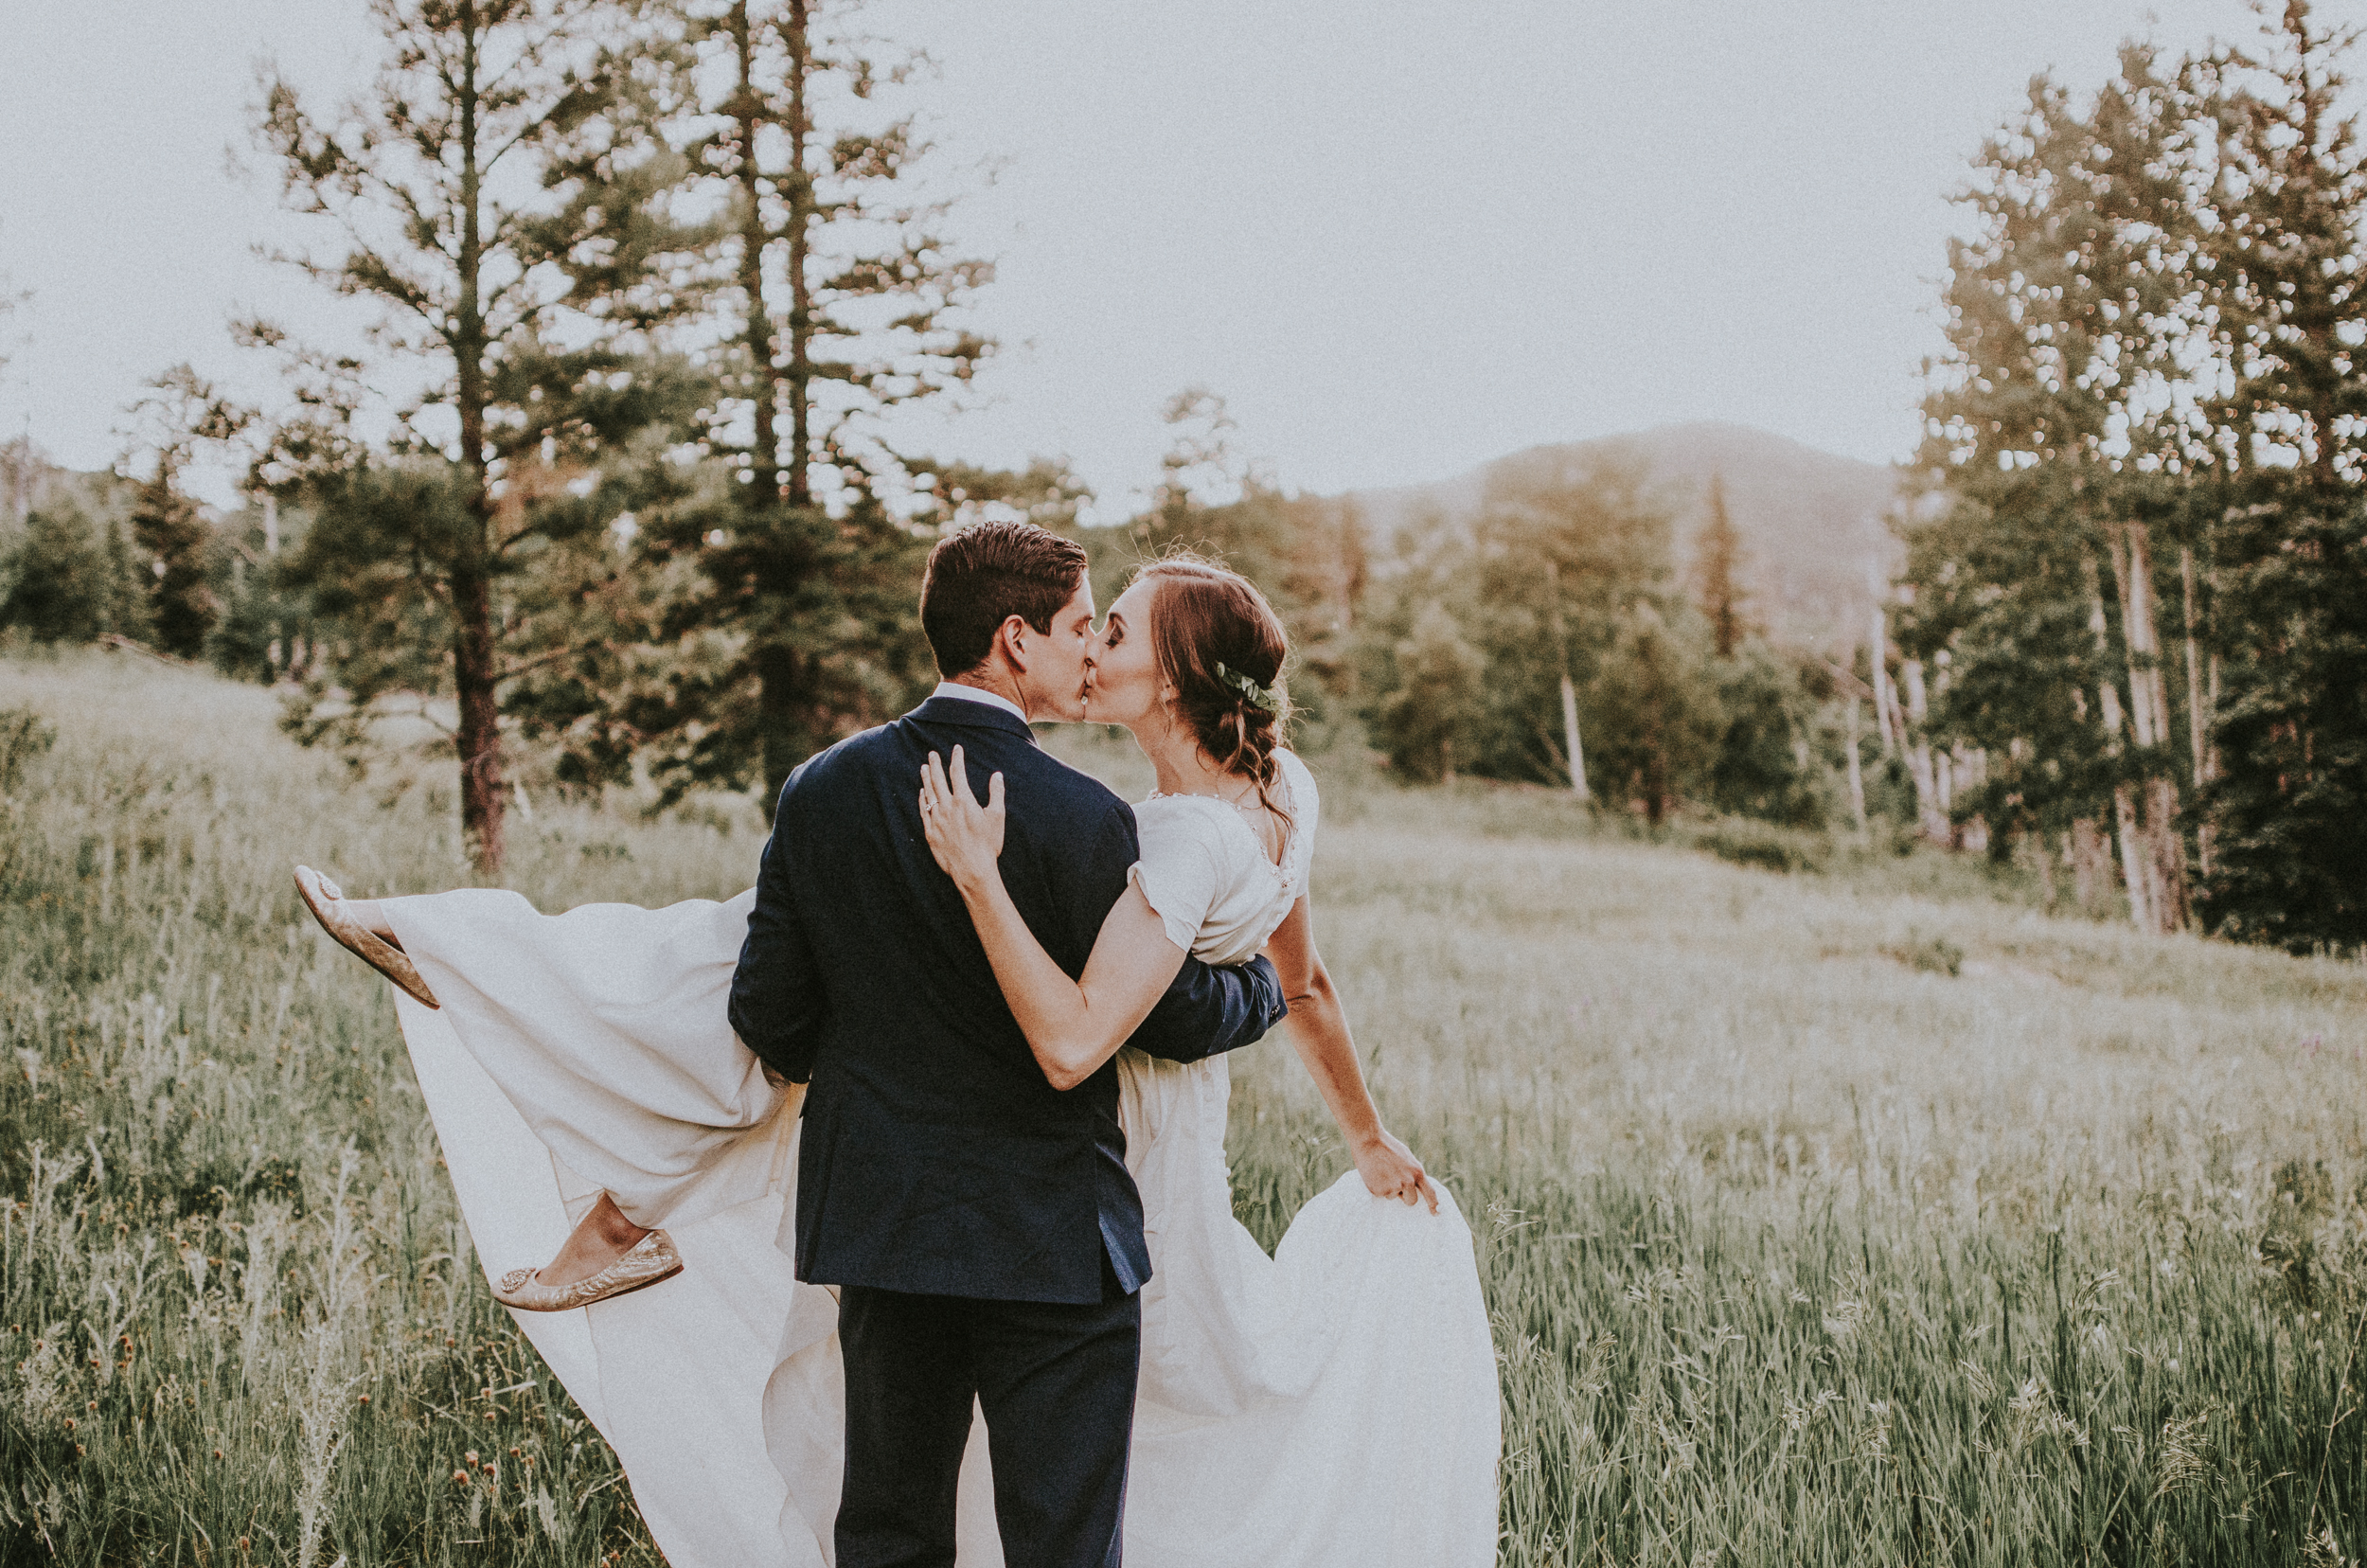 Southern Utah Elopement | Utah Elopement and Wedding Photographer | Simply Amor Photography